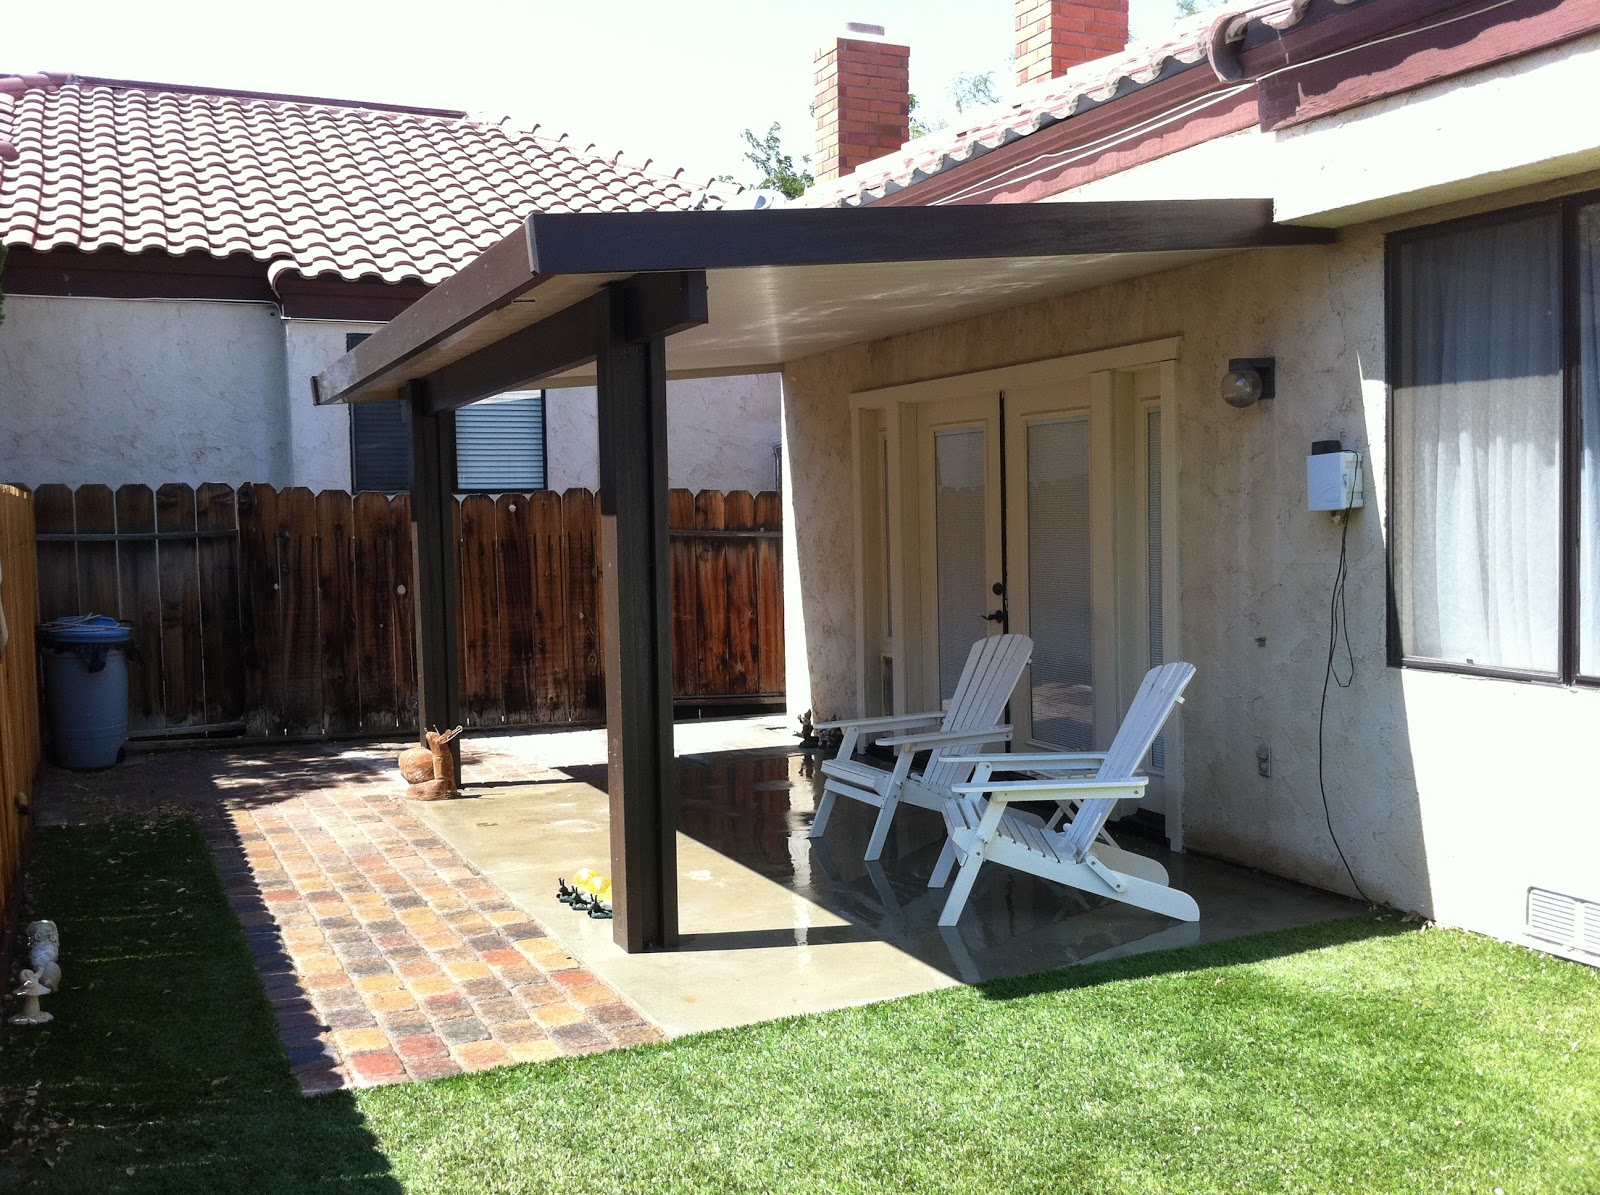 Lapham Construction: Patio Cover in Ridgecrest, California on Backyard Patios On A Budget id=20886